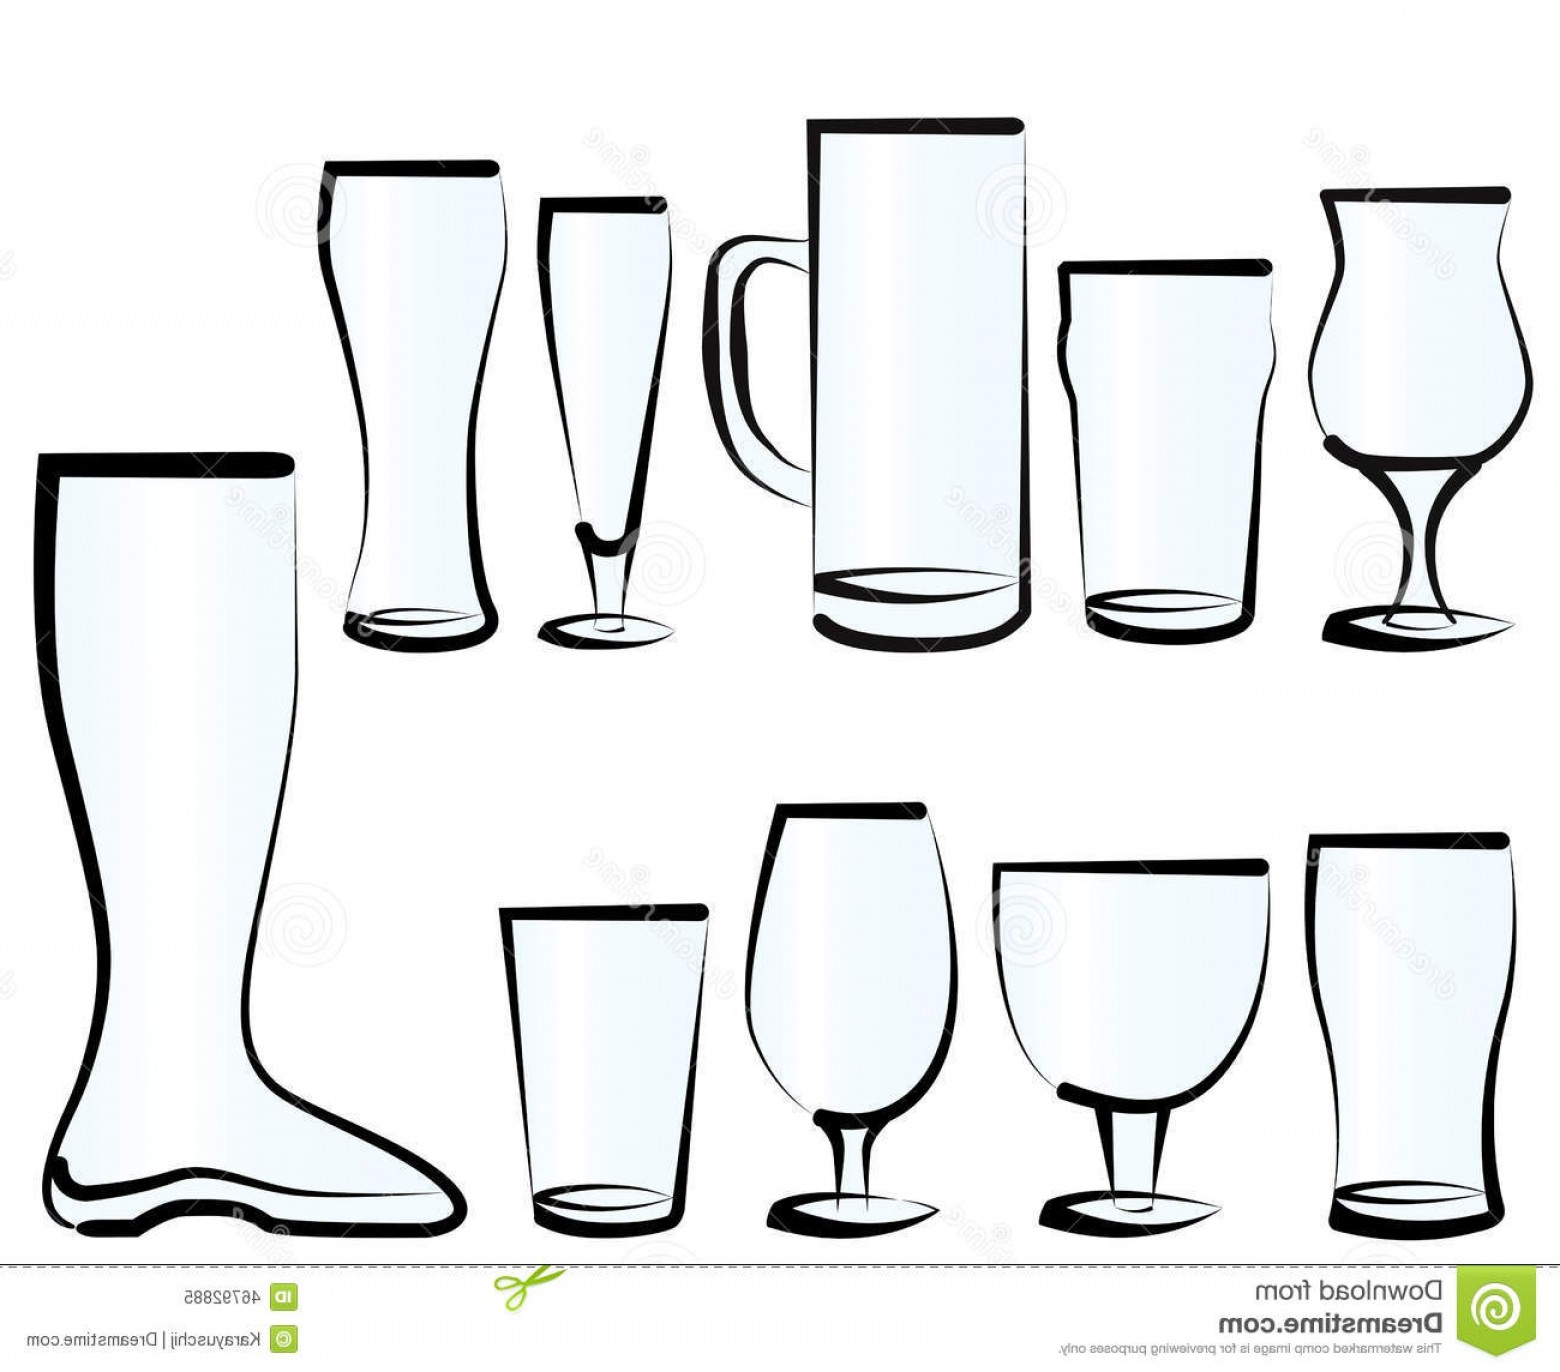 Beer Chalice Vector Logo: Stock Illustration Set Beer Glasses Vector Illustration As You Can Find Bar Pub Restaurant Image